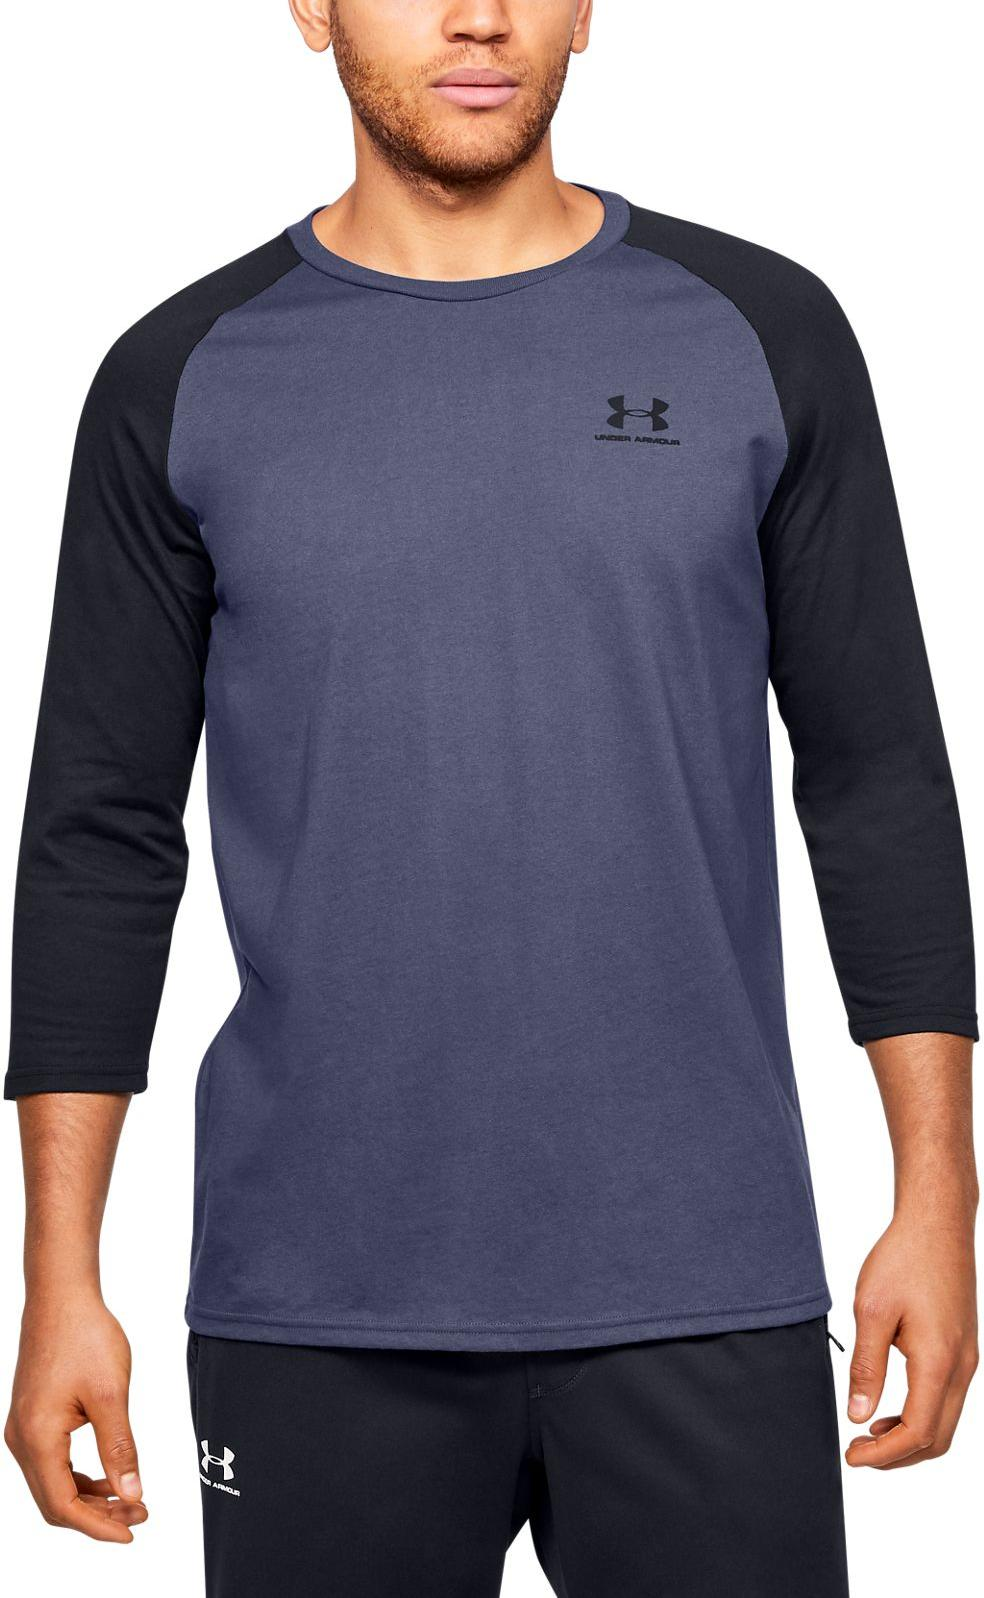 Majica Under Armour SPORTSTYLE LEFT CHEST 3/4 TEE